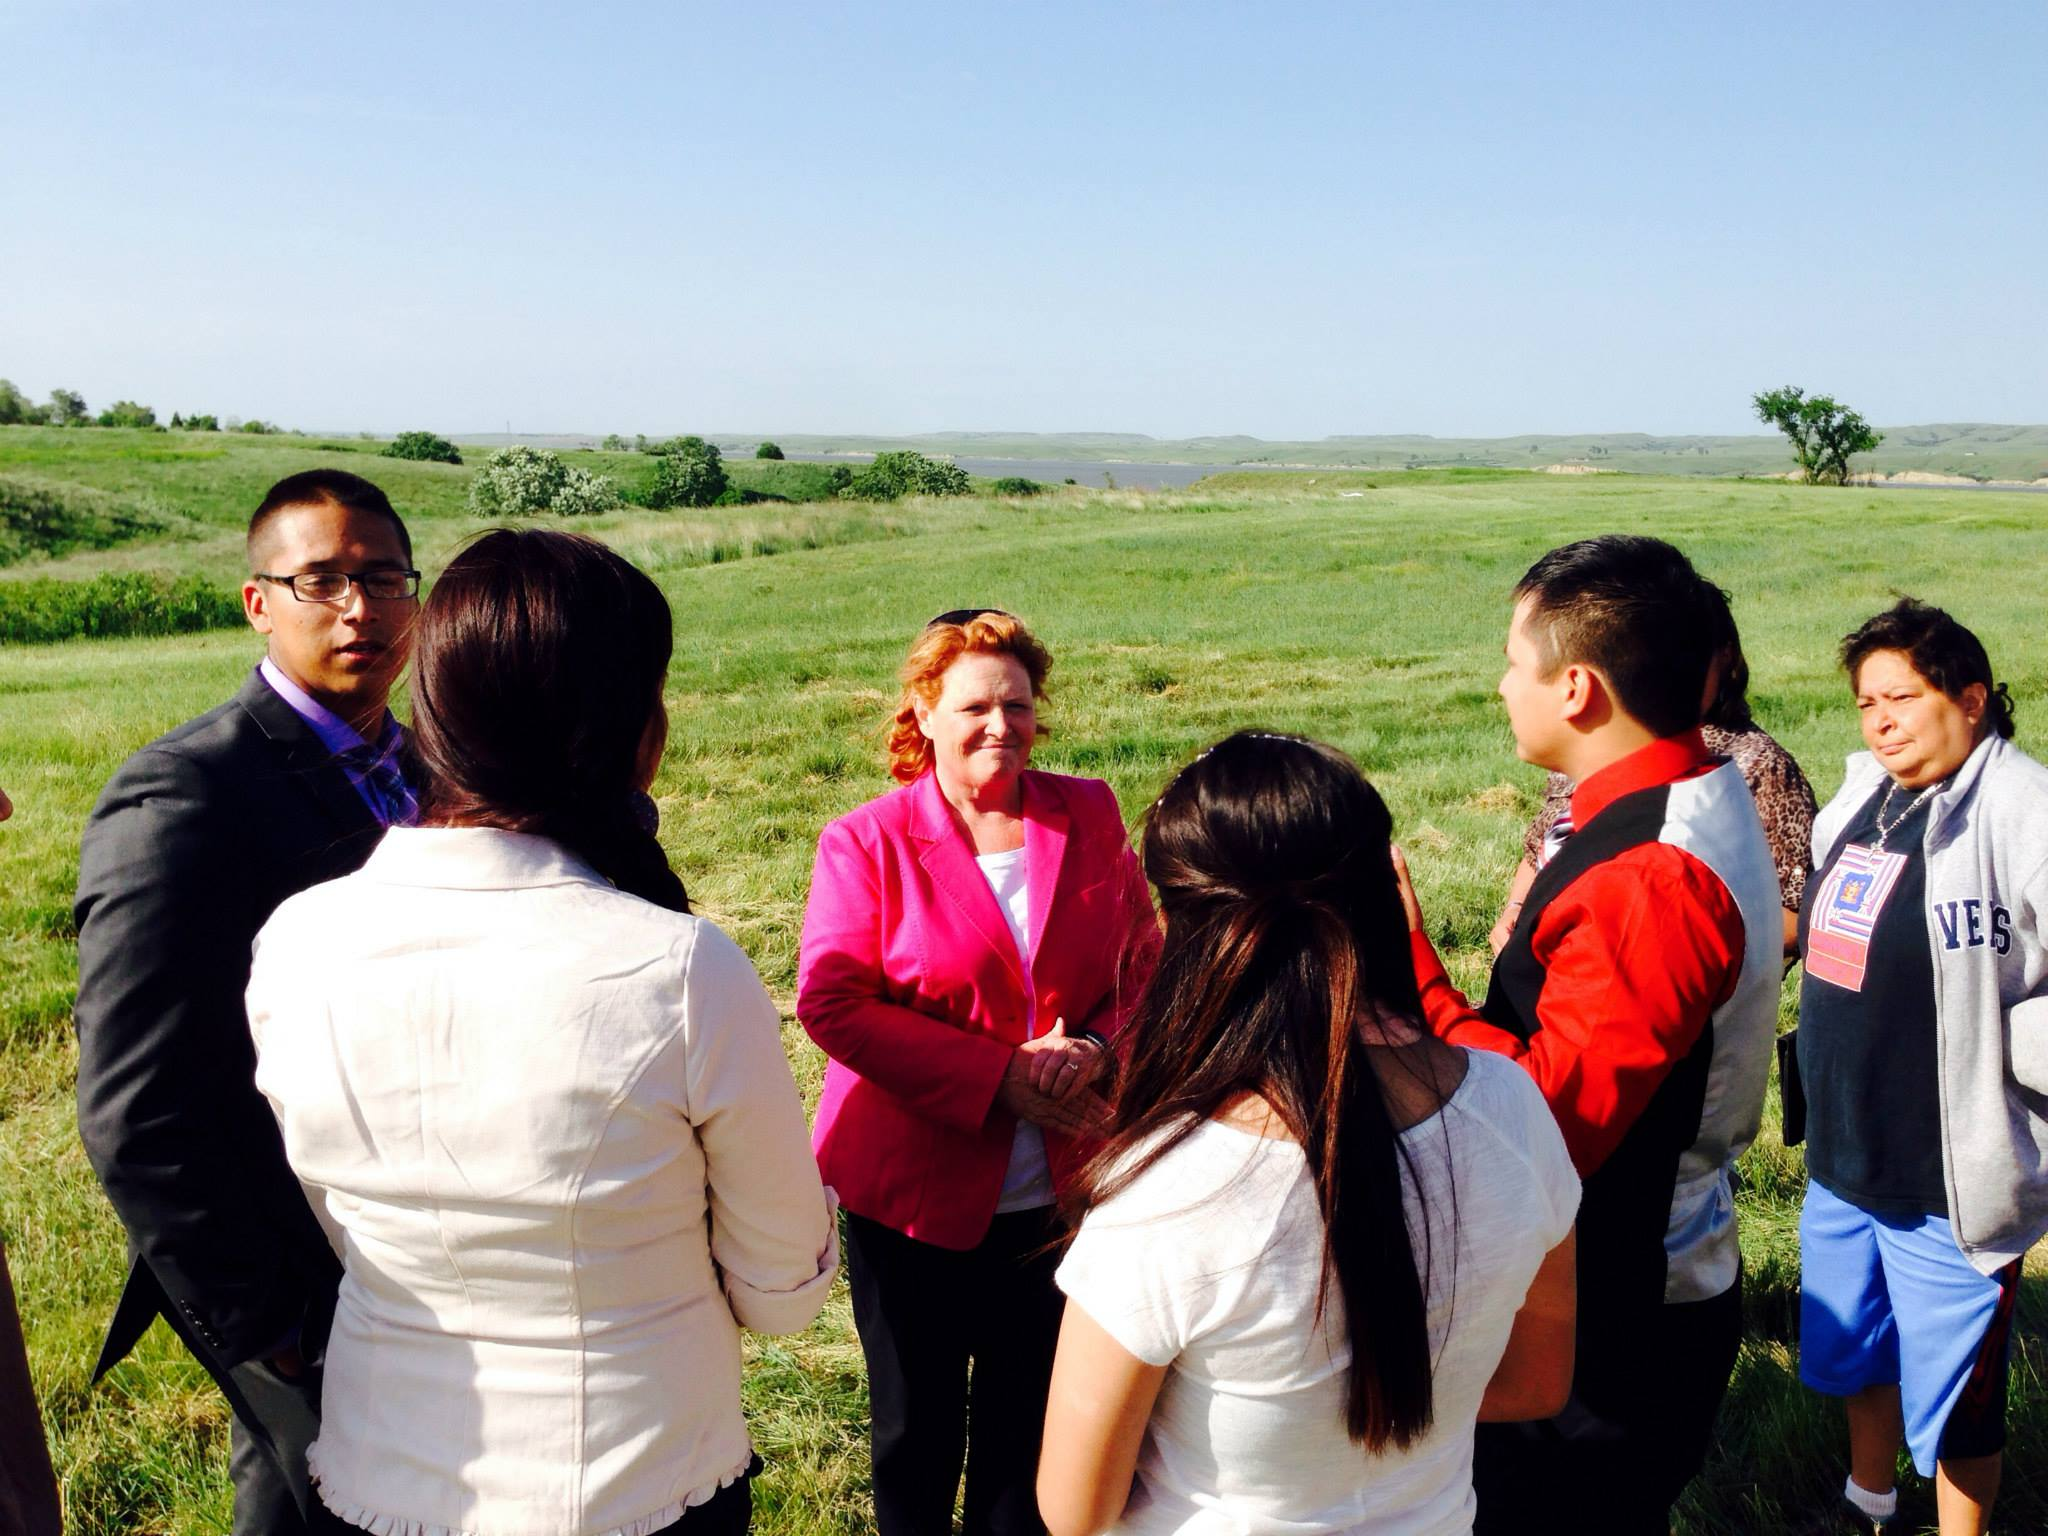 Sen. Heidi Heitkamp again parts with Indian Country on #NoDAPL movement